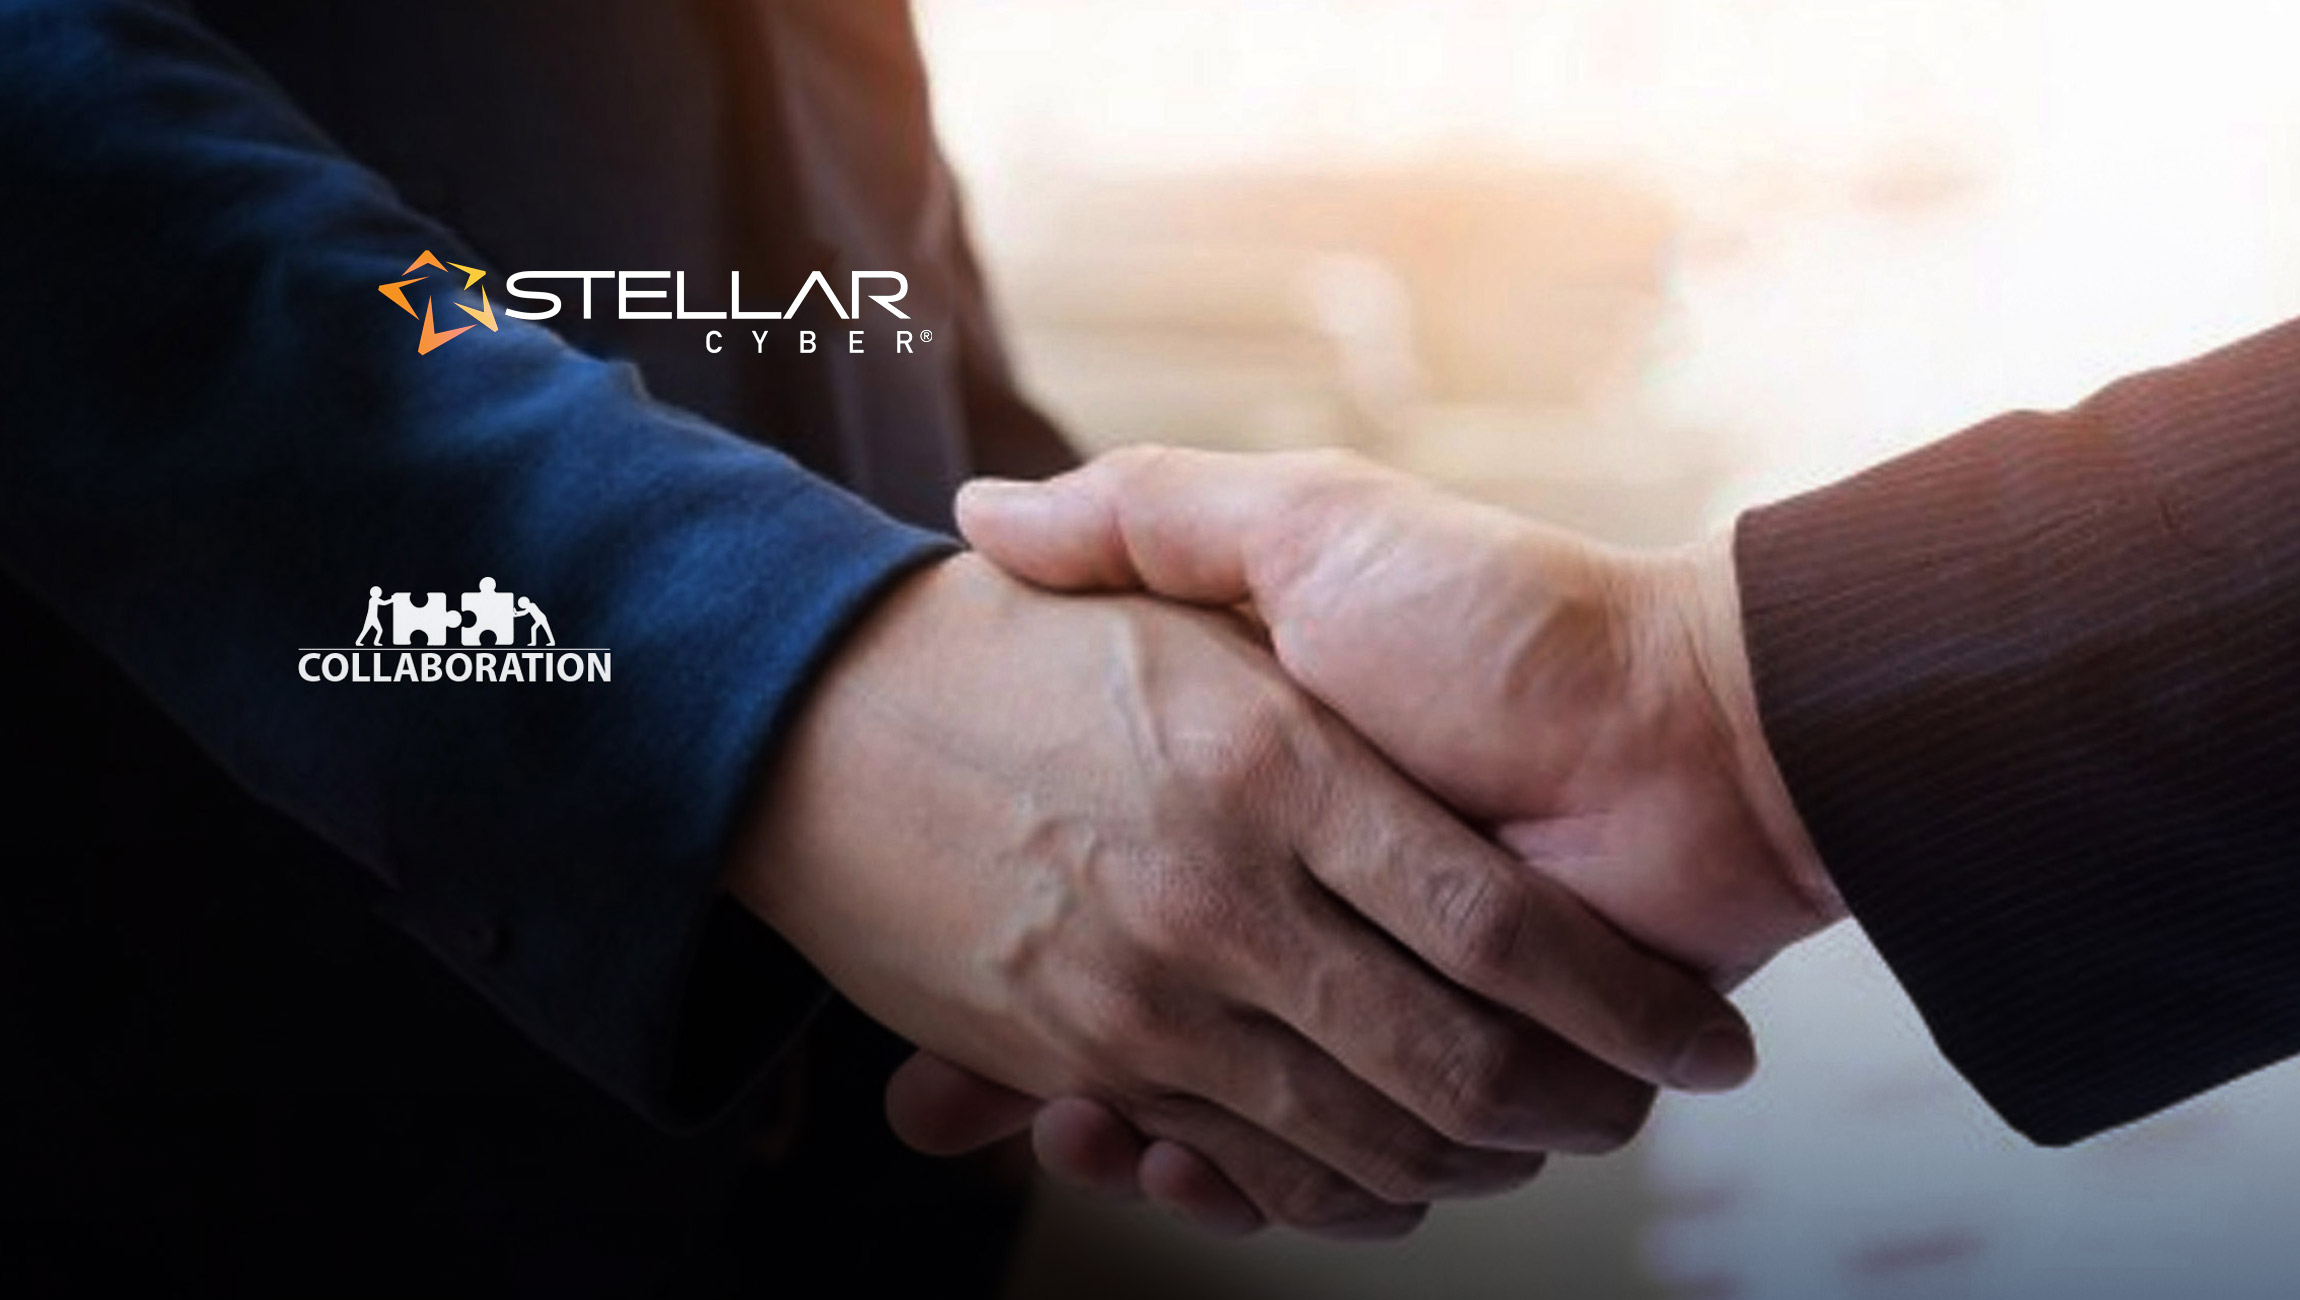 REVEZ Partnership Expands Stellar Cyber World's First AI/ML Cybersecurity Platform in Asia-Pacific